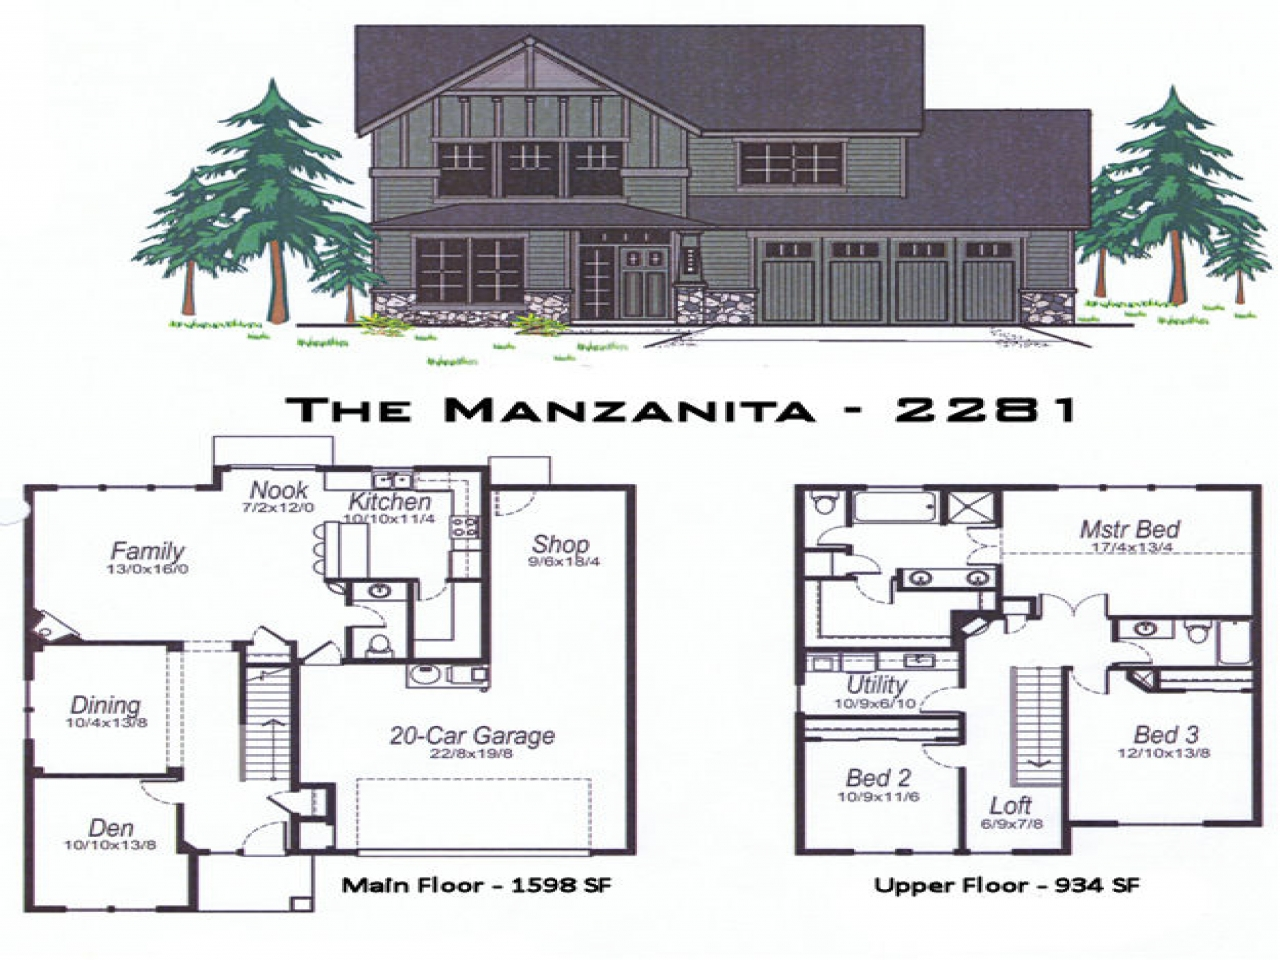 2500 sq ft square house plans 2500 sq ft floor plans for 2500 ft house plans